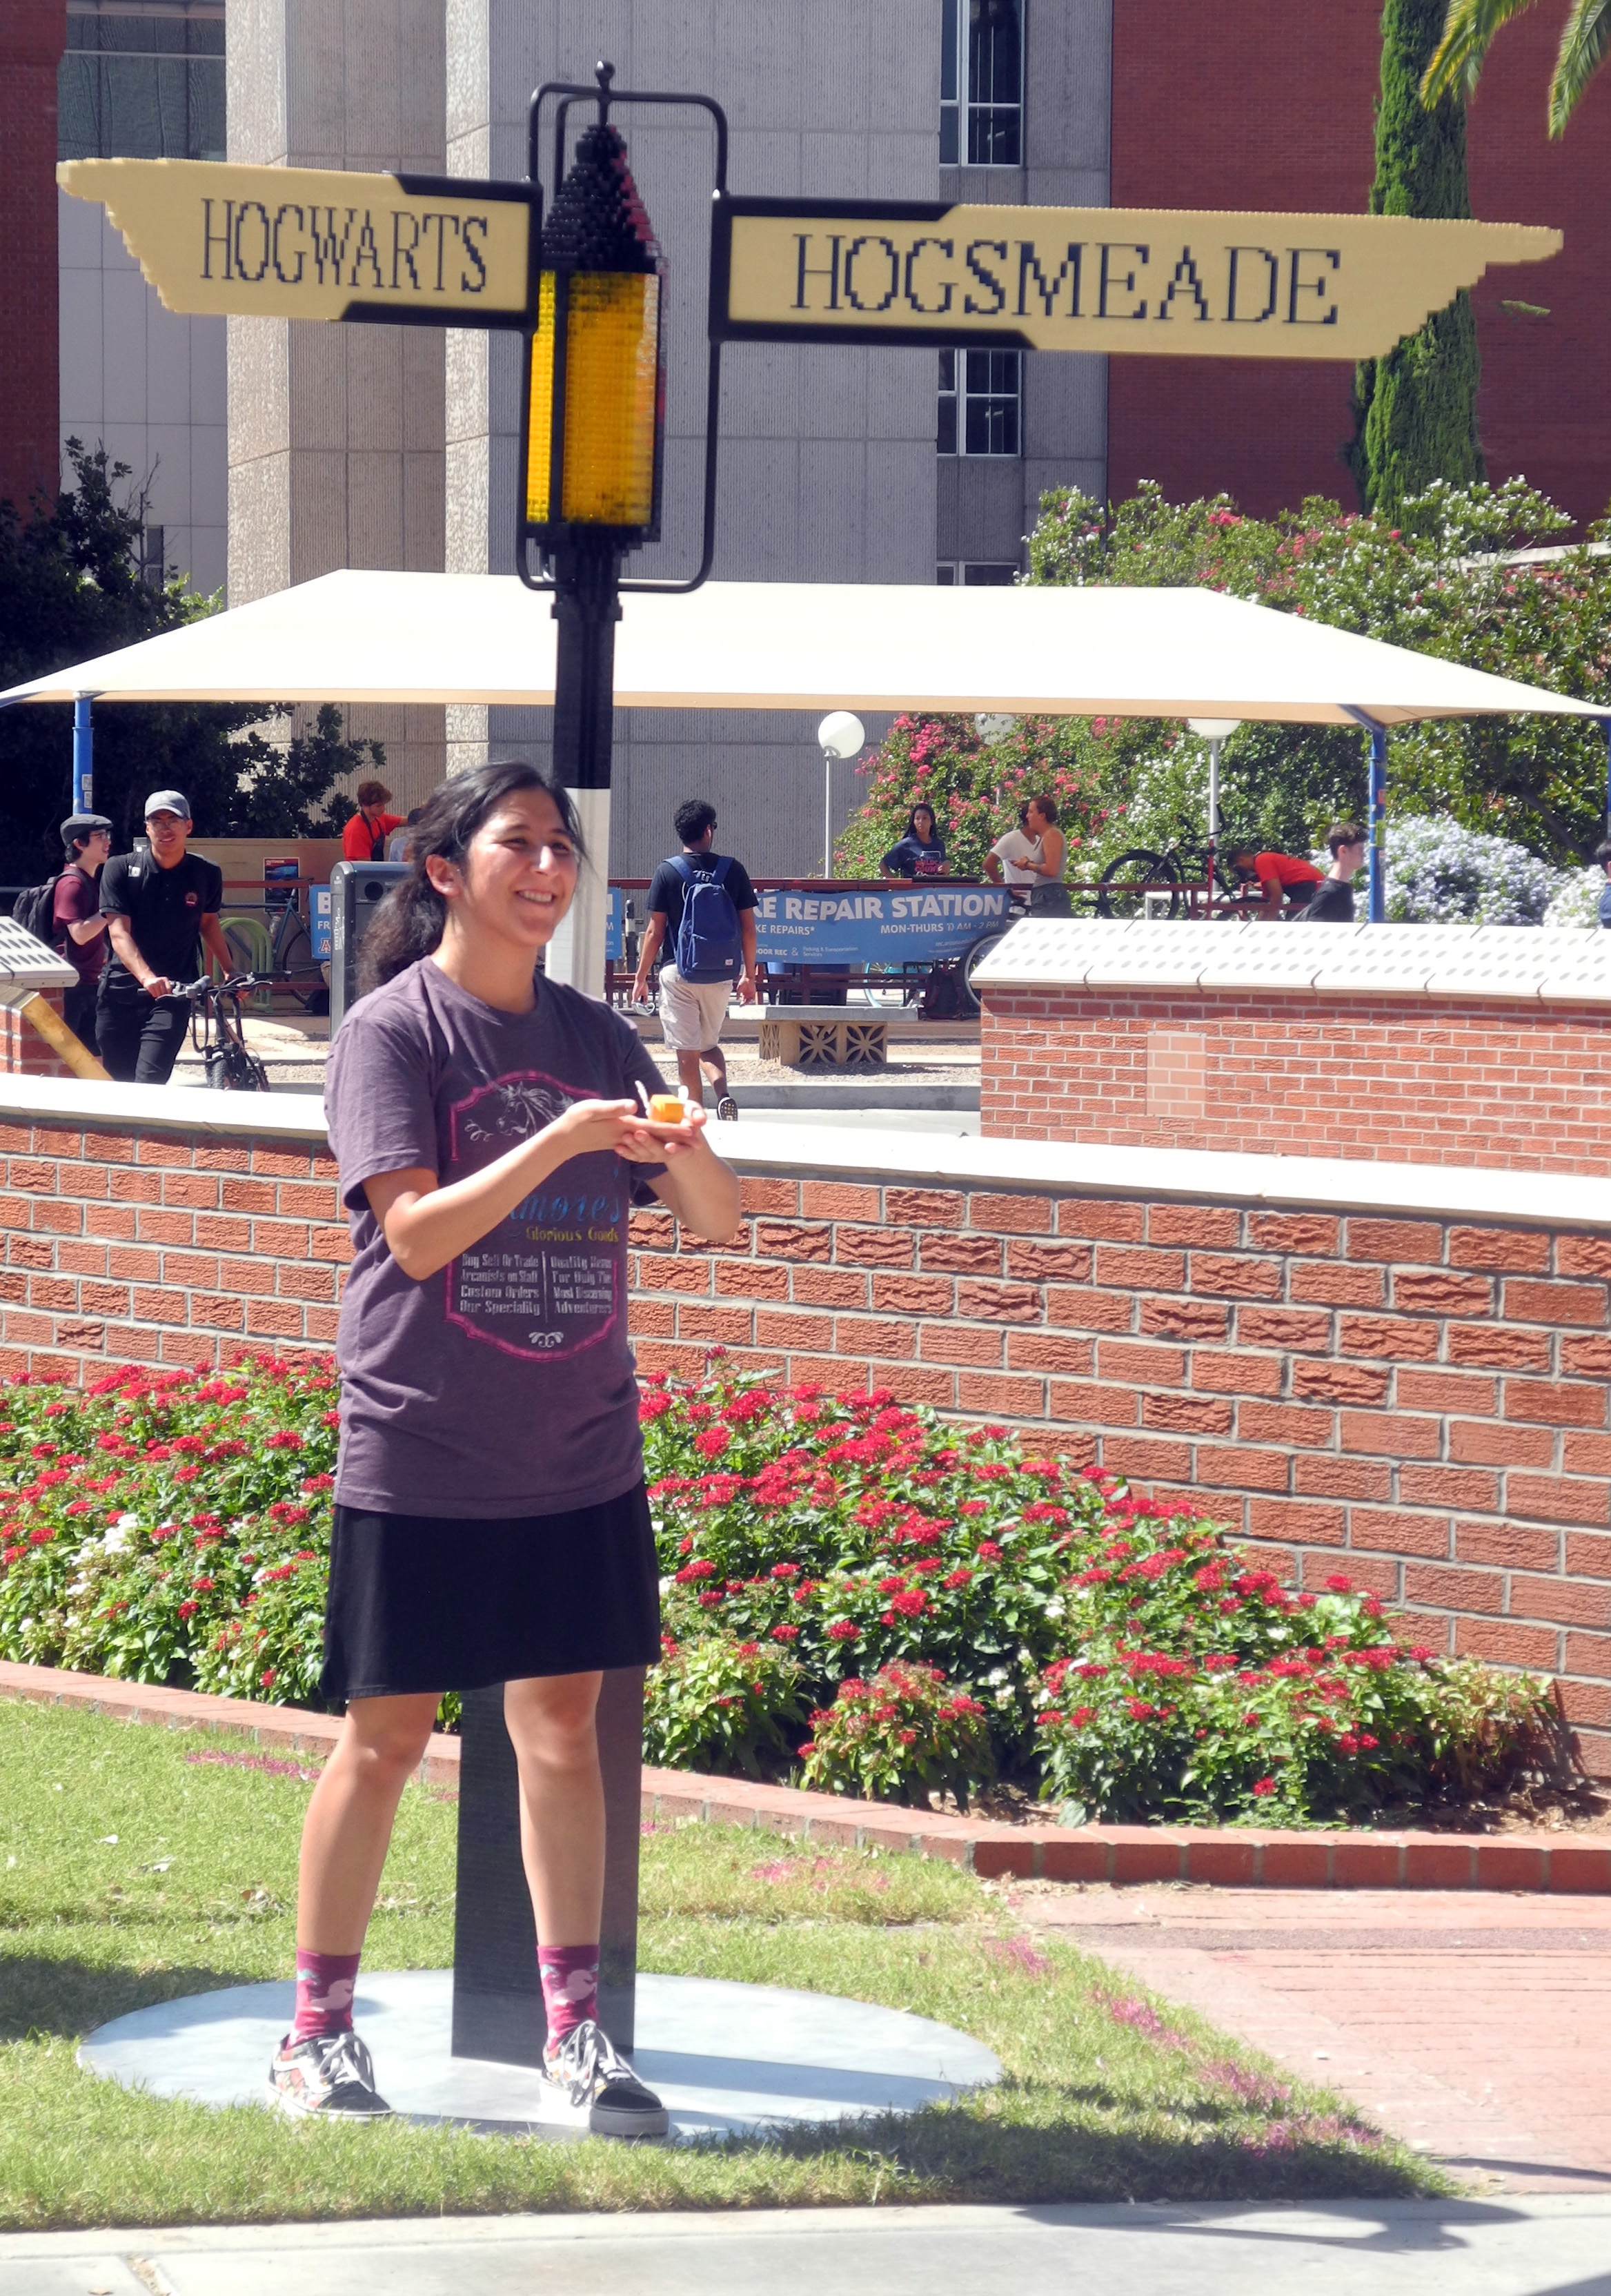 A University of Arizona student shows off the LEGO Golden Snitch she created in front of the signpost at the Back to Hogwarts event.